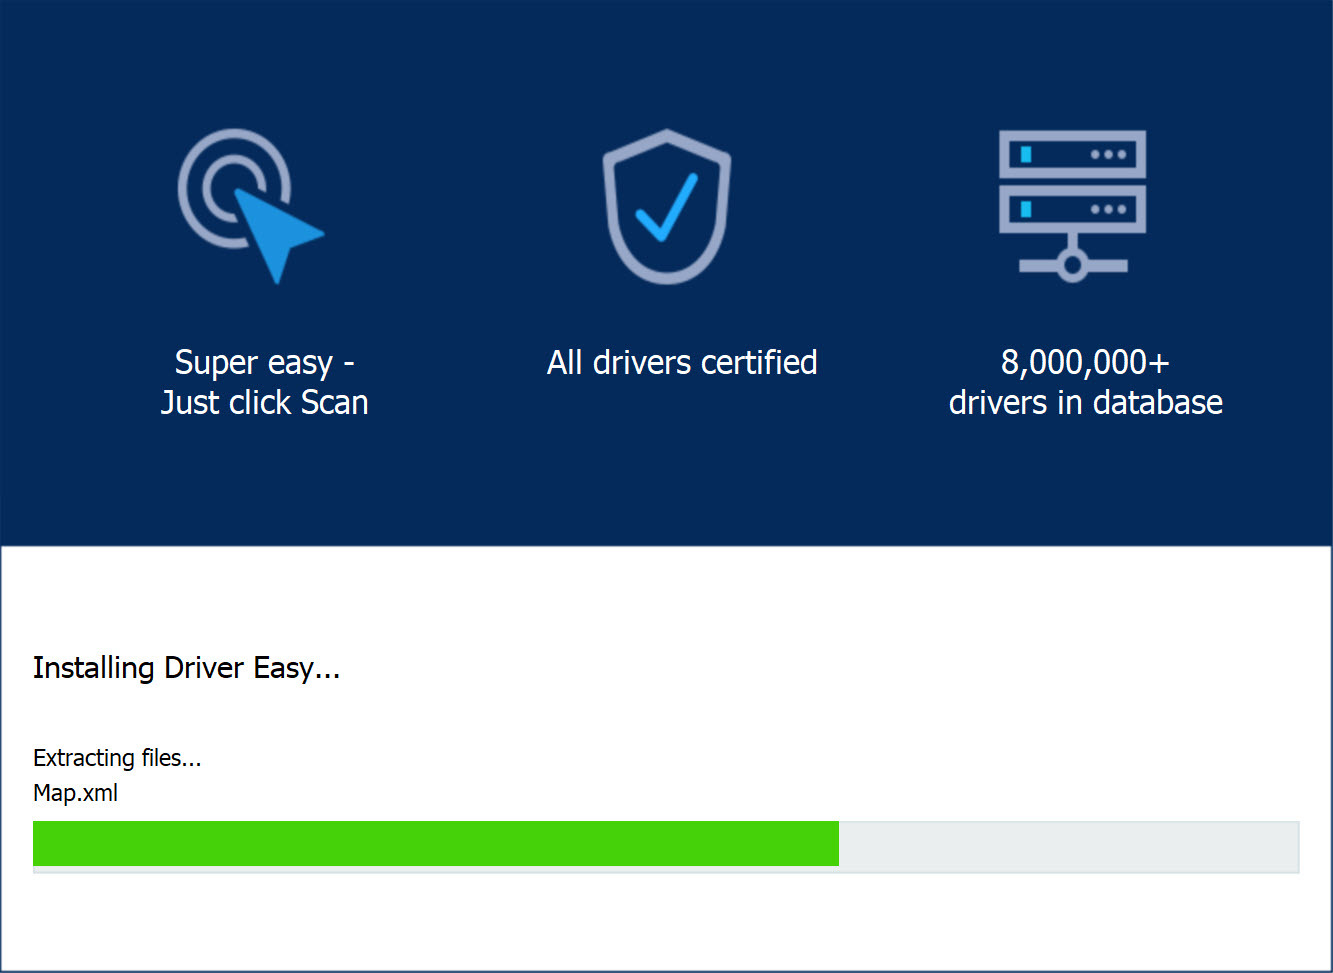 Installing Driver Easy